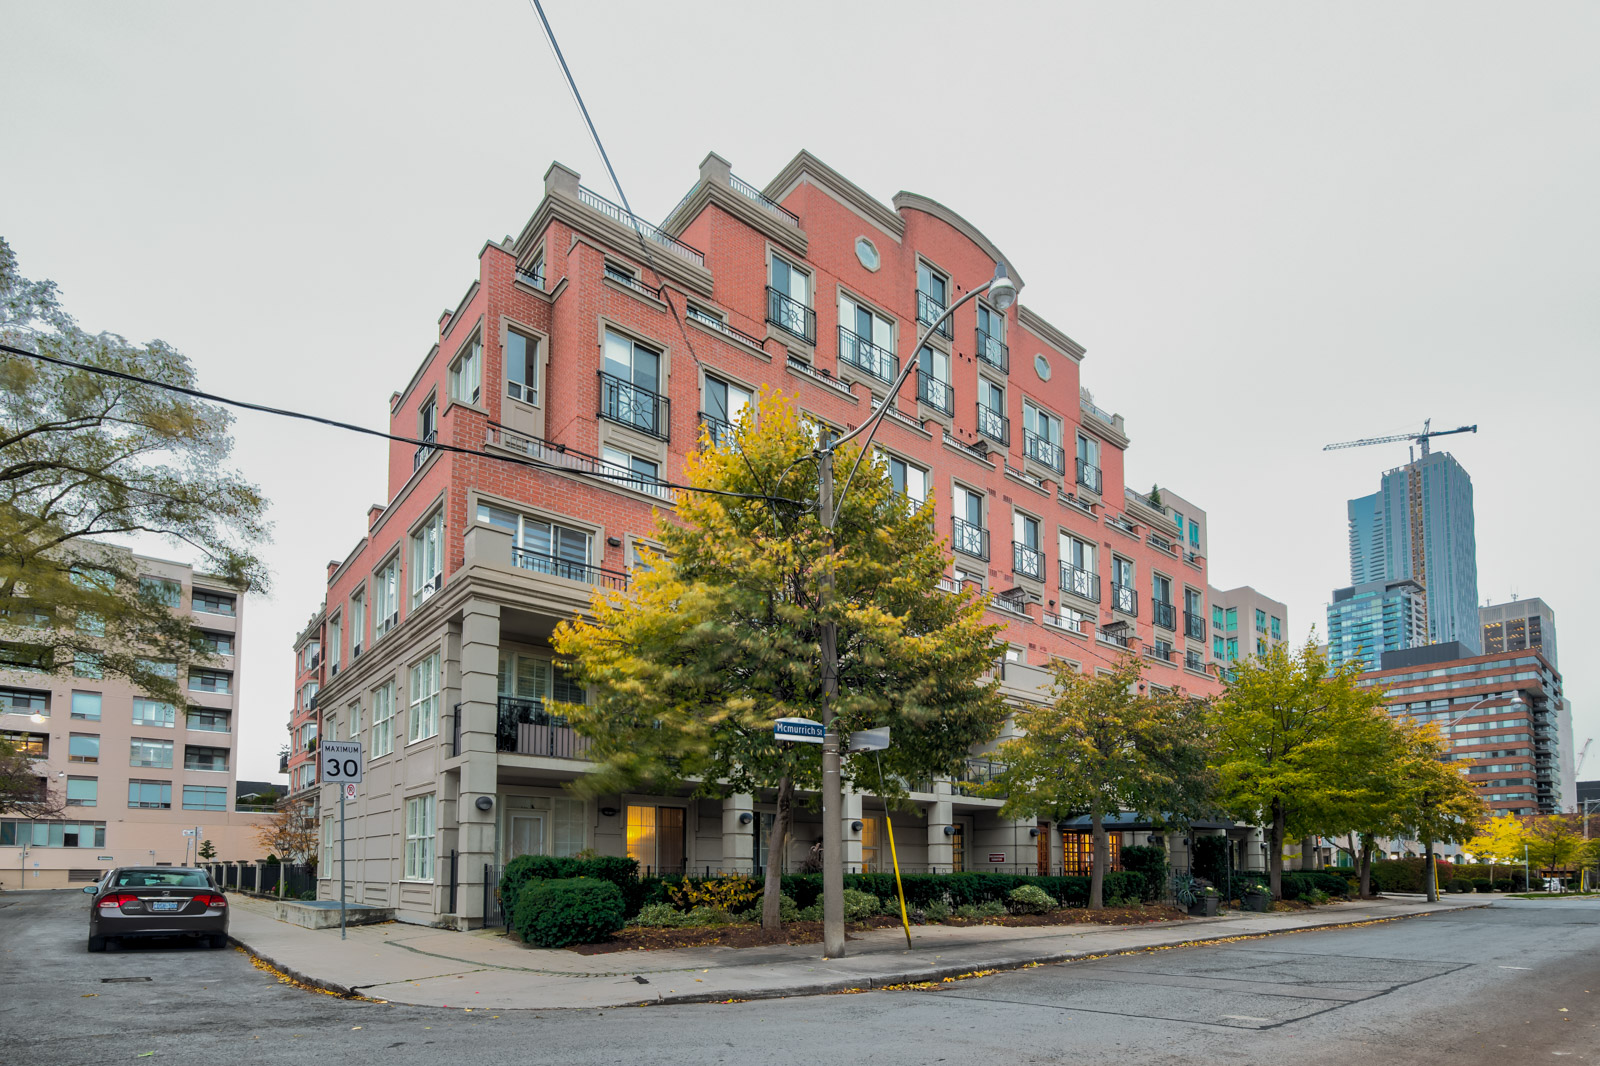 Boutique condo with red-brick facade of 77 Mcmurrich St Unit 308, Mcmurrich Residences, the fourth most expensive property.